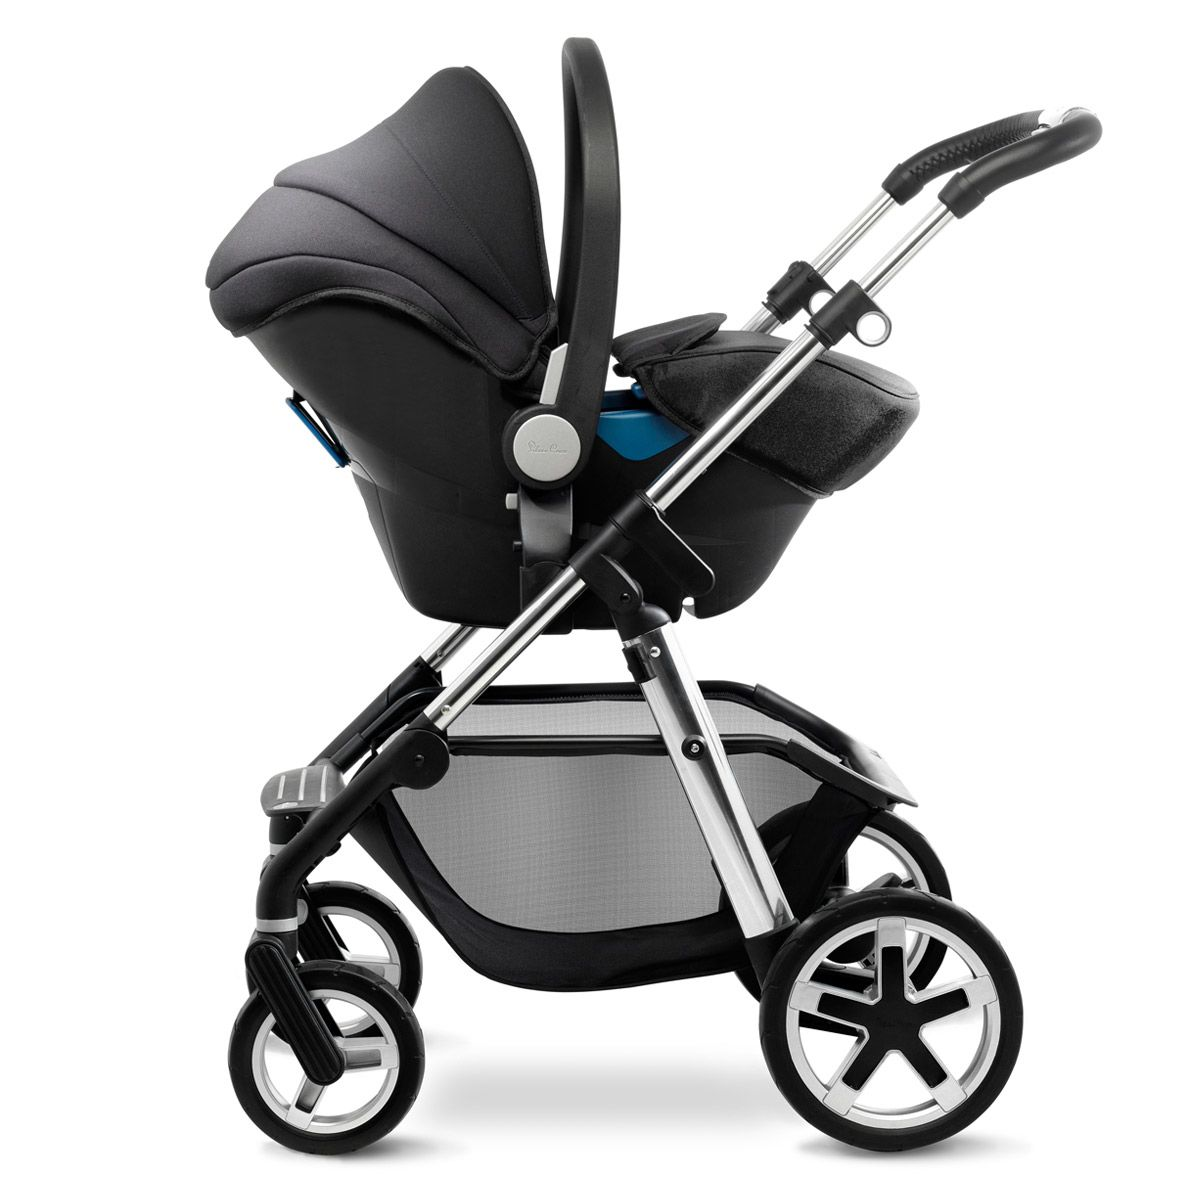 Poussette Peg Perego Trio Cross Simplicity Black Strollers Baby Car Seats Best